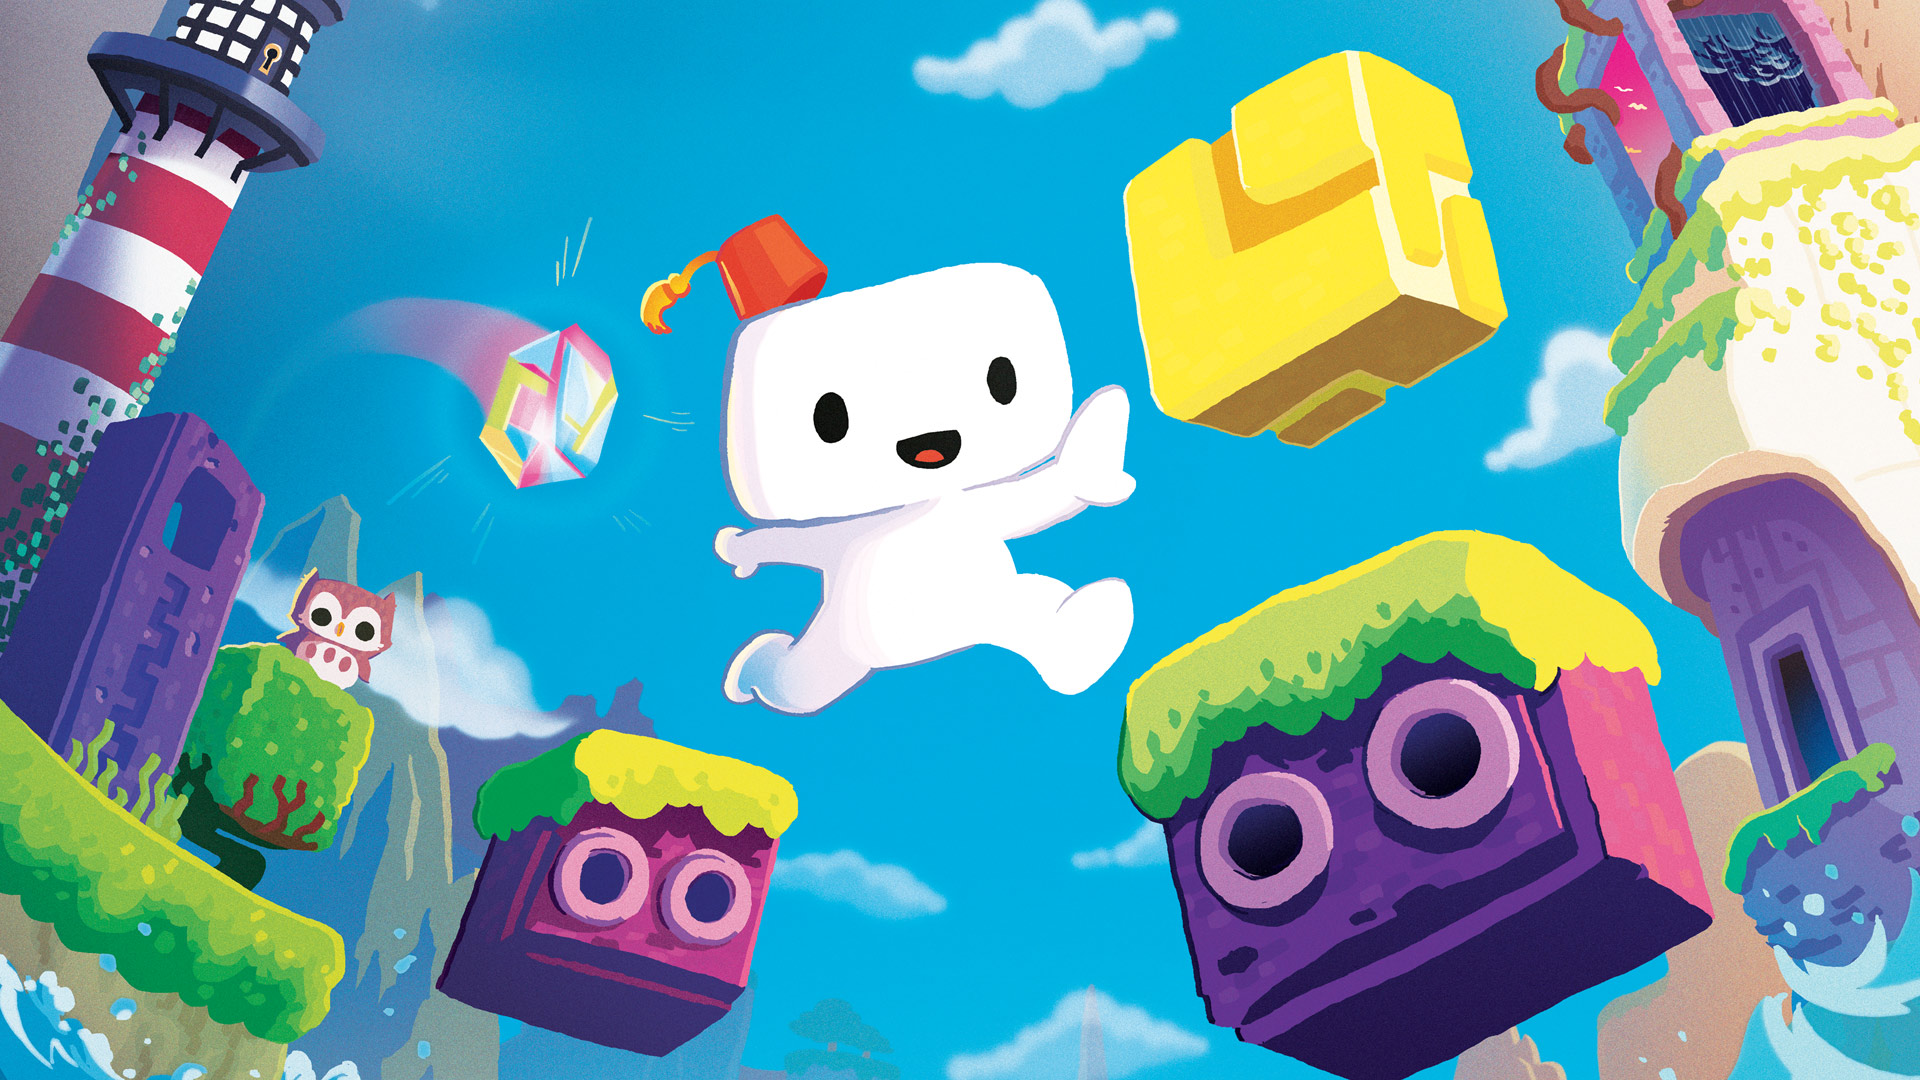 New Footage of Fez on PS4